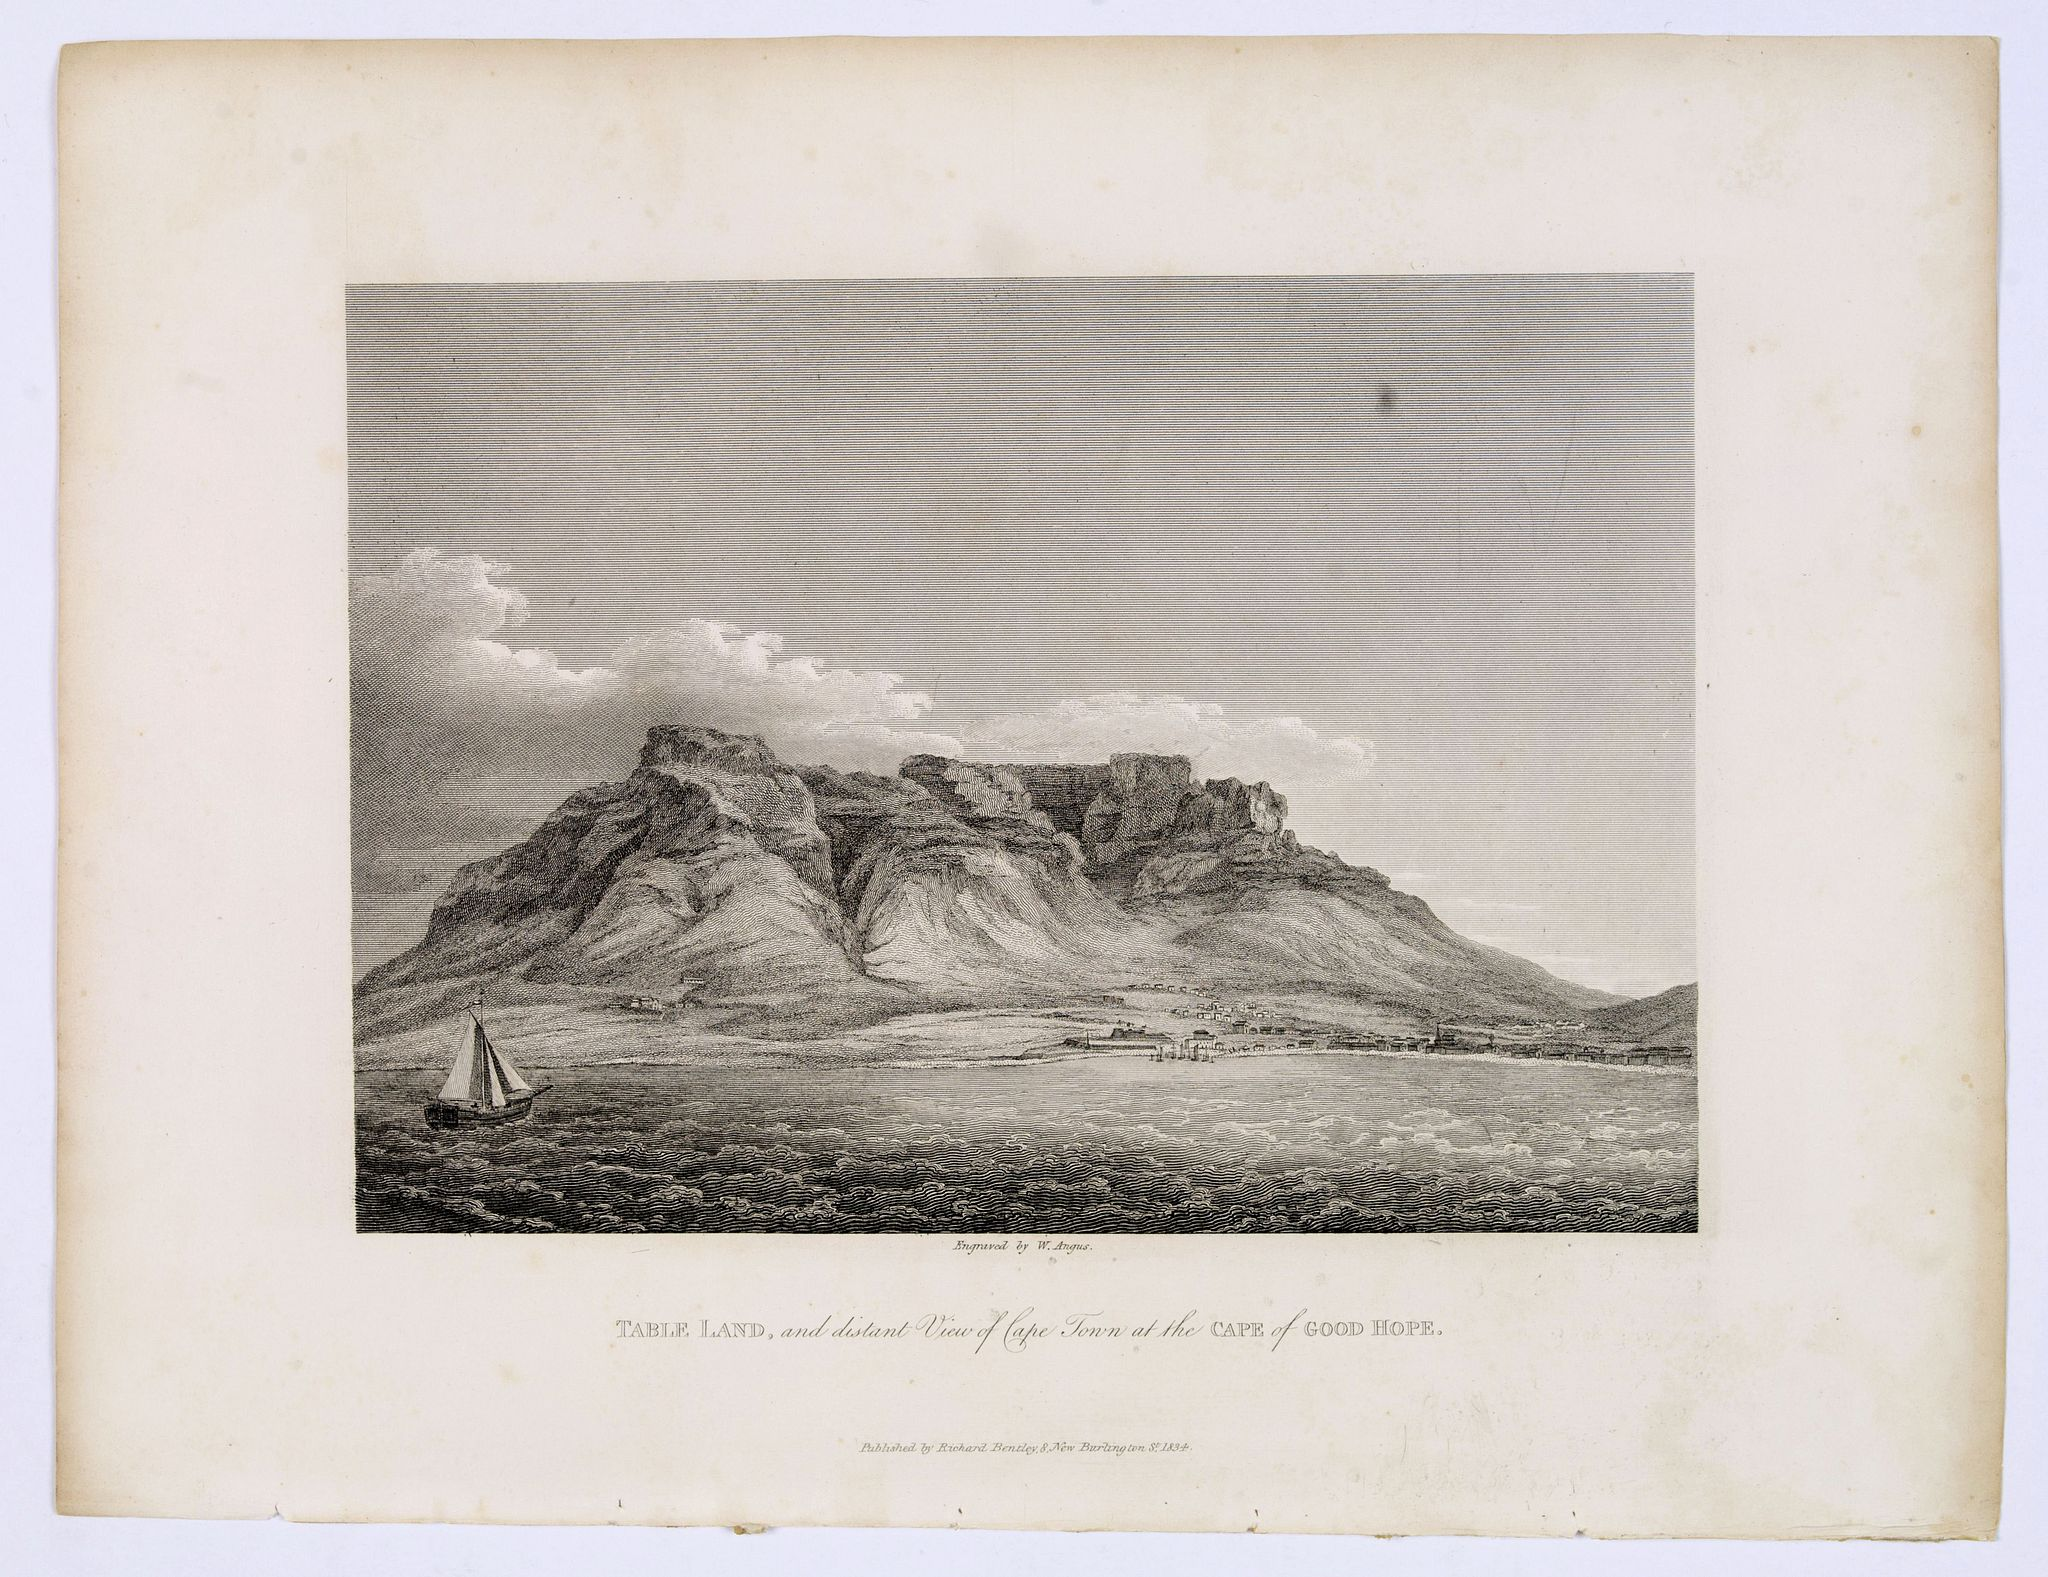 BENTLEY, Richard. - TABLE LAND, and distant View of Cape Town at the CAPE of GOOD HOPE.